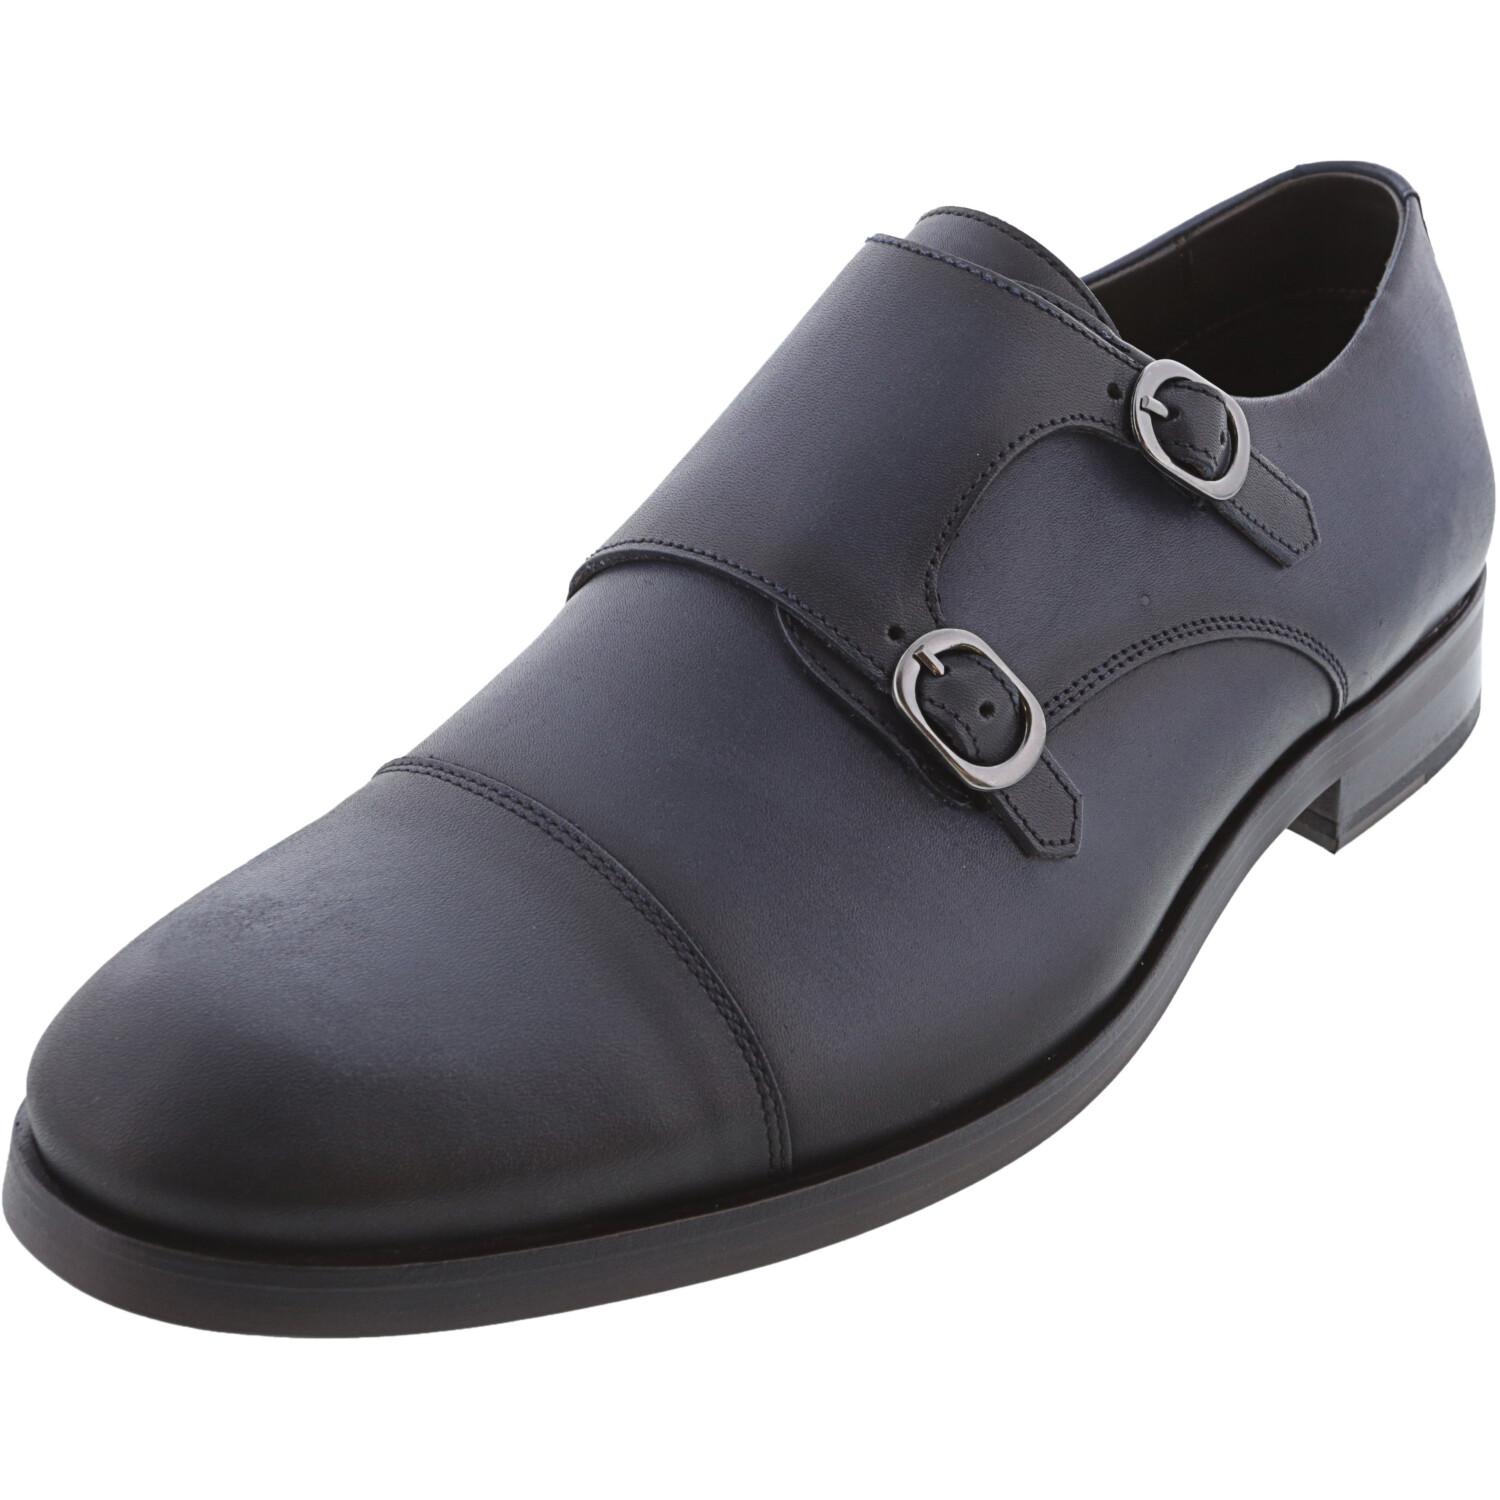 Marc Joseph New York Men's Grand Central Navy Burnished Low Top Leather Loafers & Slip-On - 8.5M